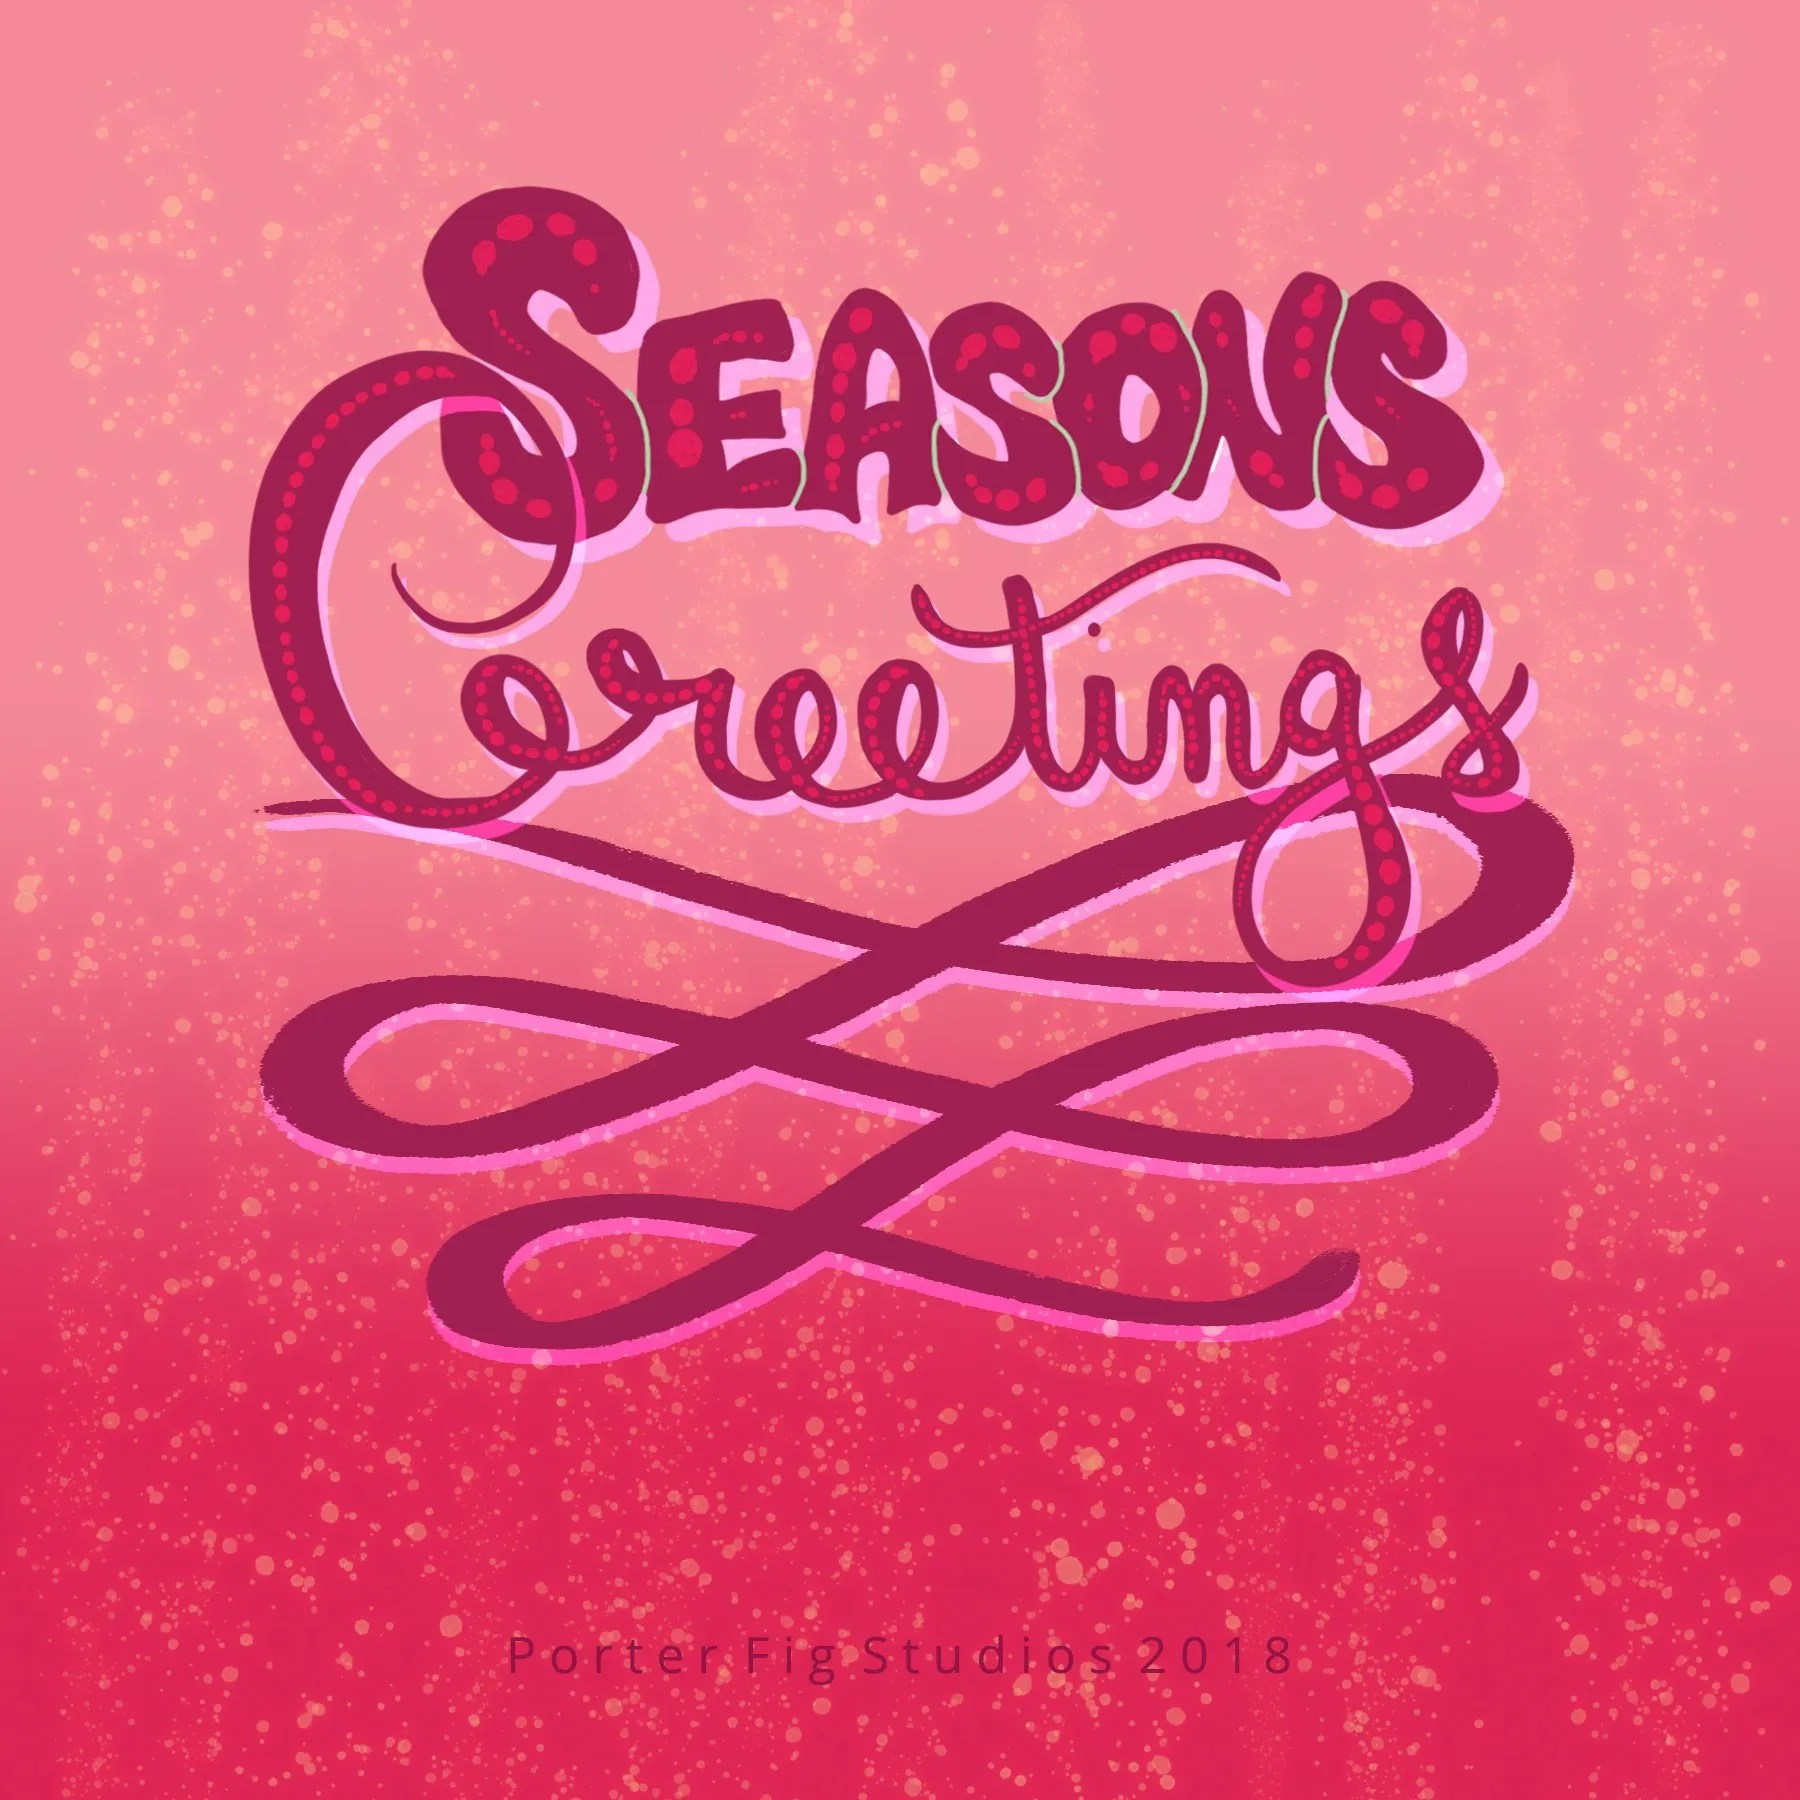 Hand lettered seasons greetings